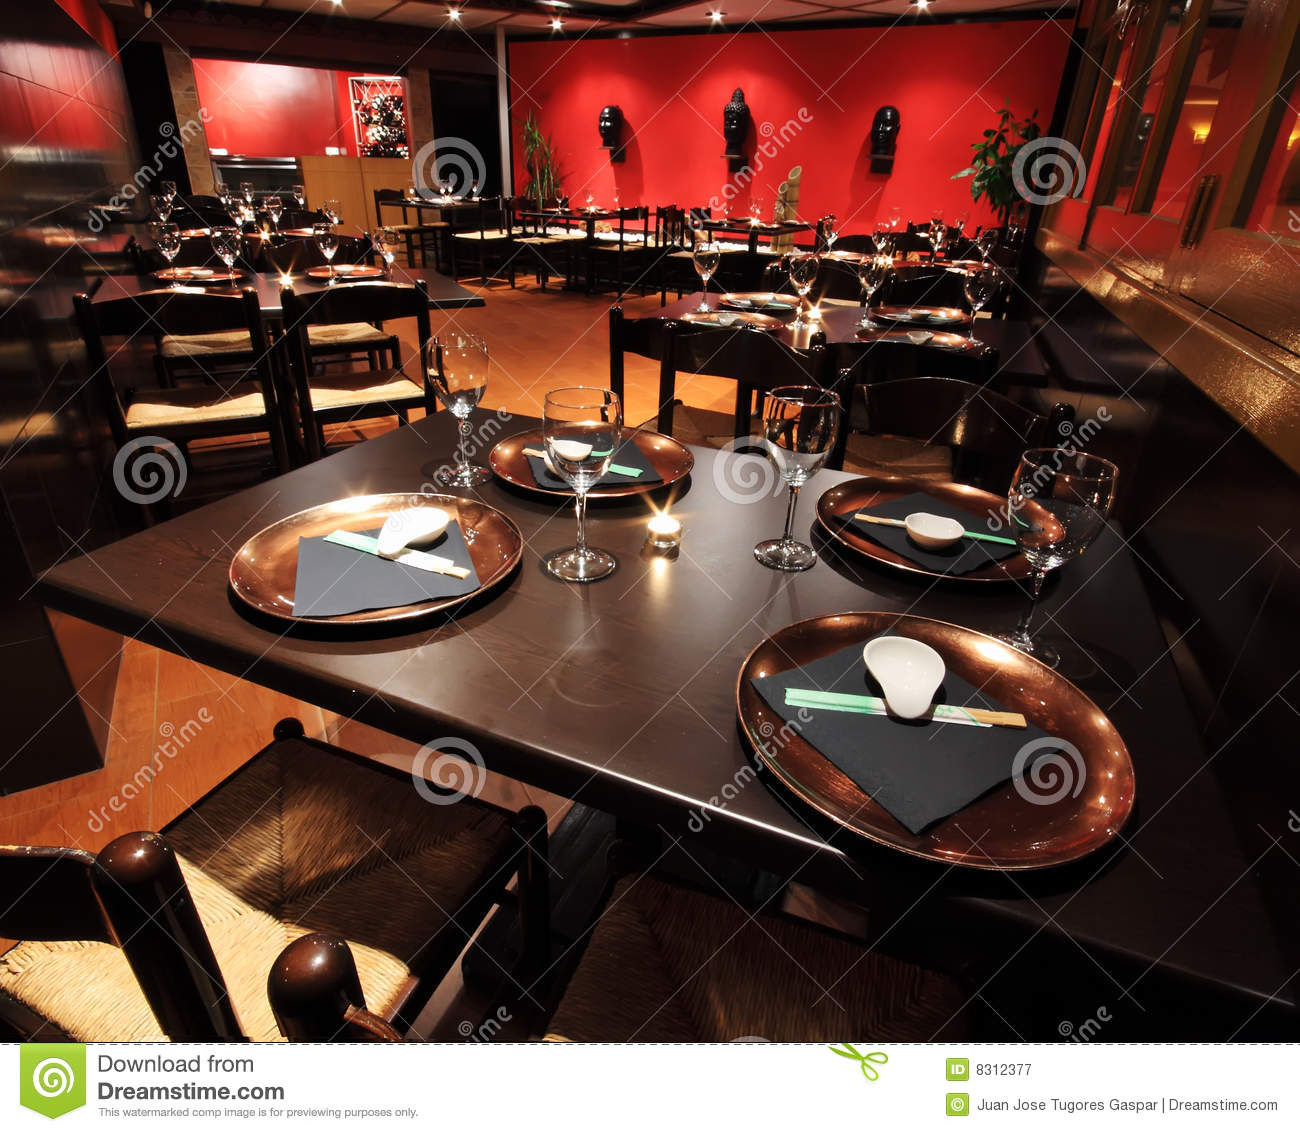 946 Modern Restaurant Interiors Photos Free Royalty Free Stock Photos From Dreamstime